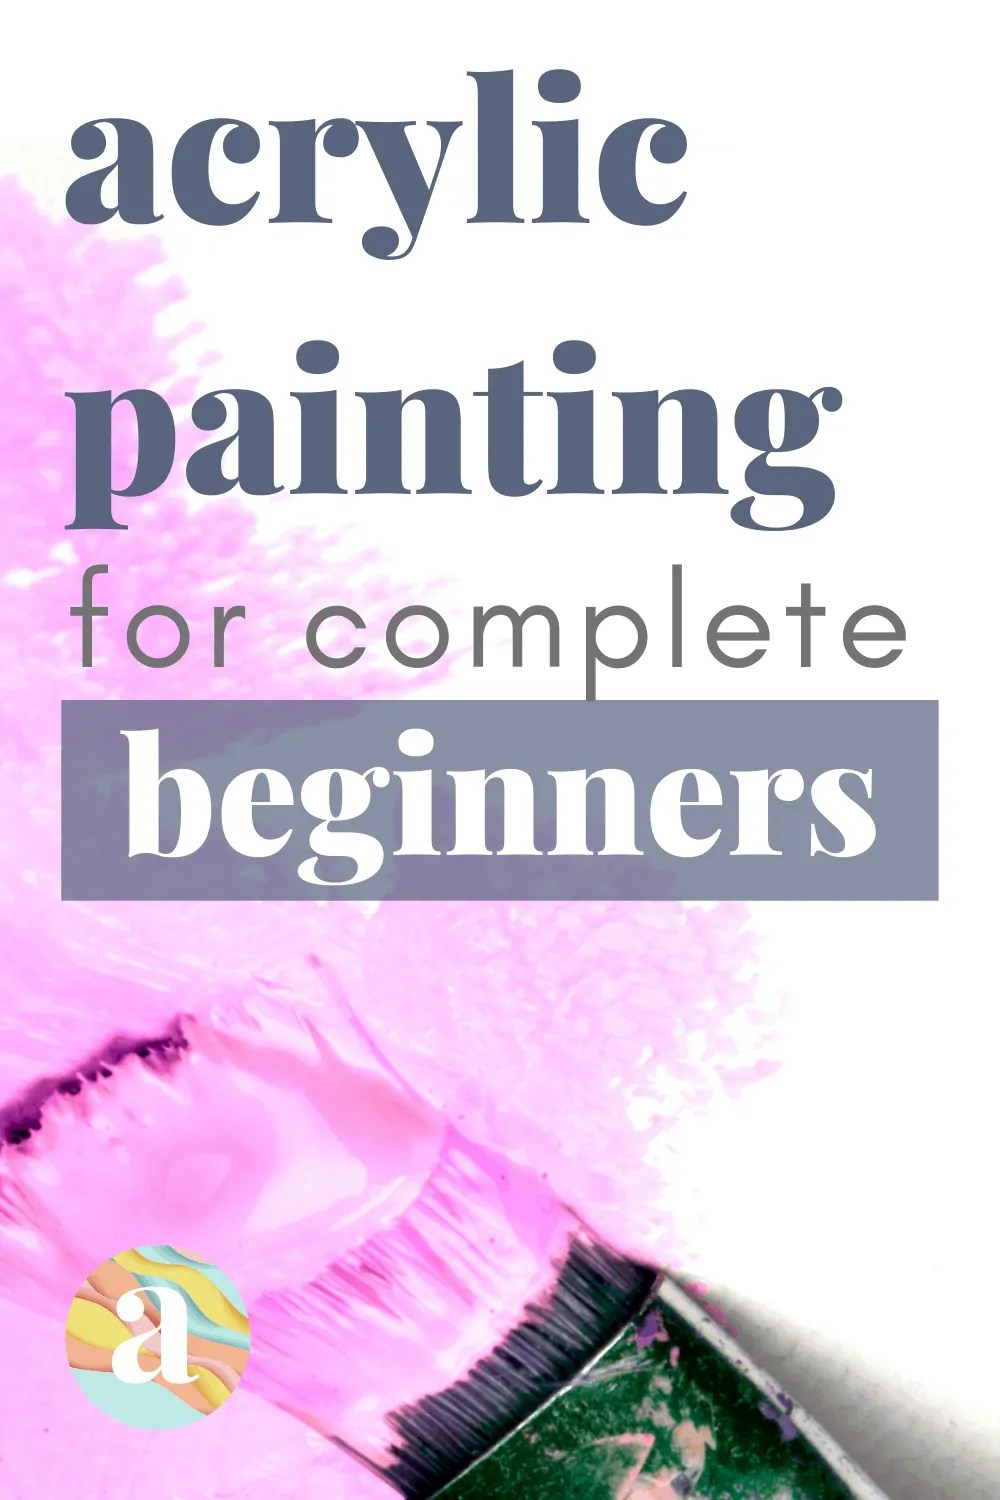 Acrylic Painting for Beginners 21